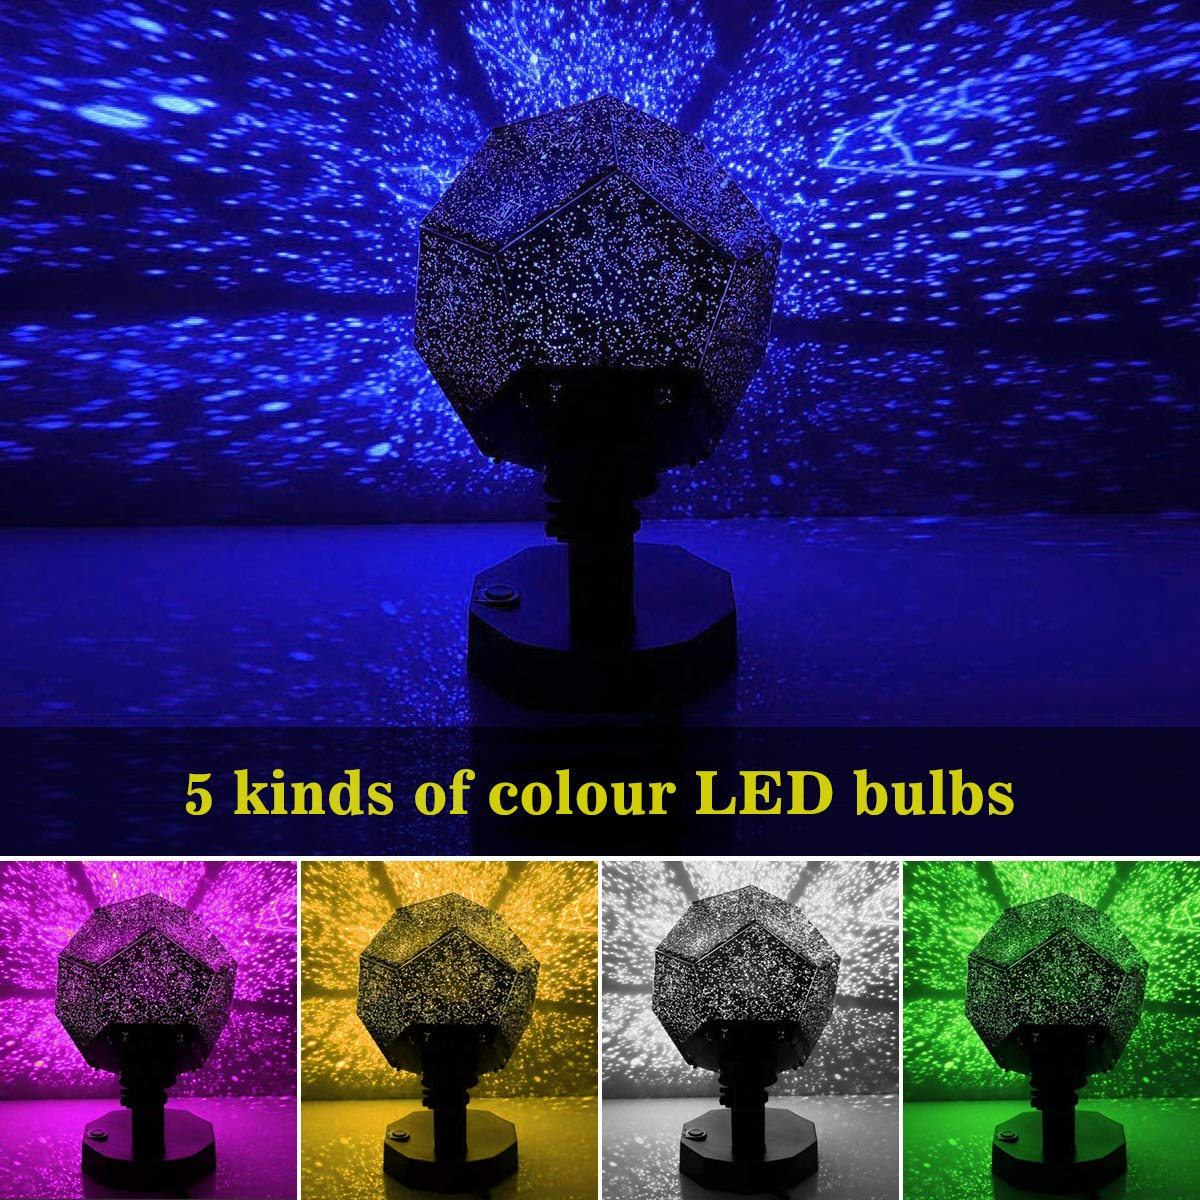 Sunnec Star Projector, Rotation DIY Star Projection Night Light with 5 Light Colors for Wedding,Birthday,Parties,Kids Bedroom